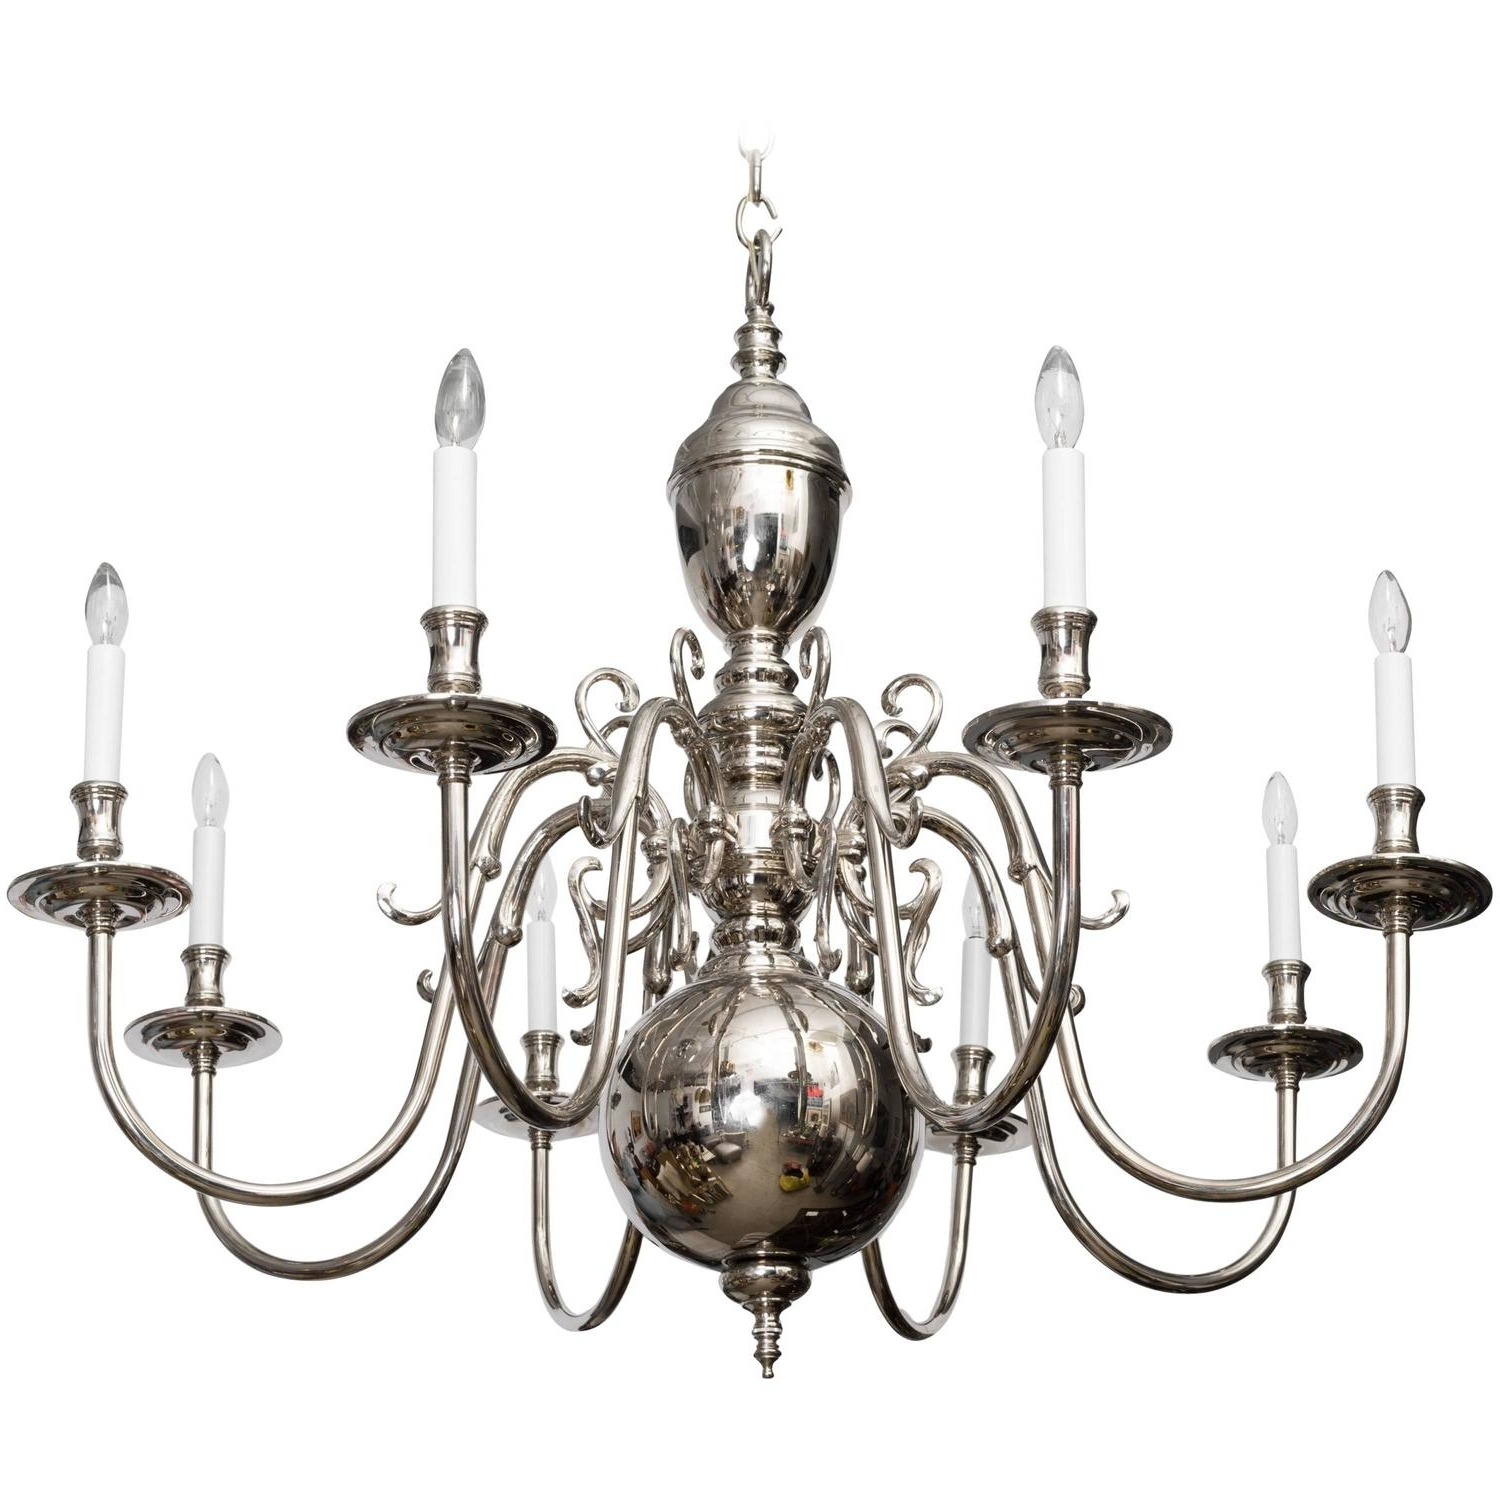 Georgian Chandeliers Throughout Most Recent Grand Scale Georgian Style Chandelier (View 11 of 20)